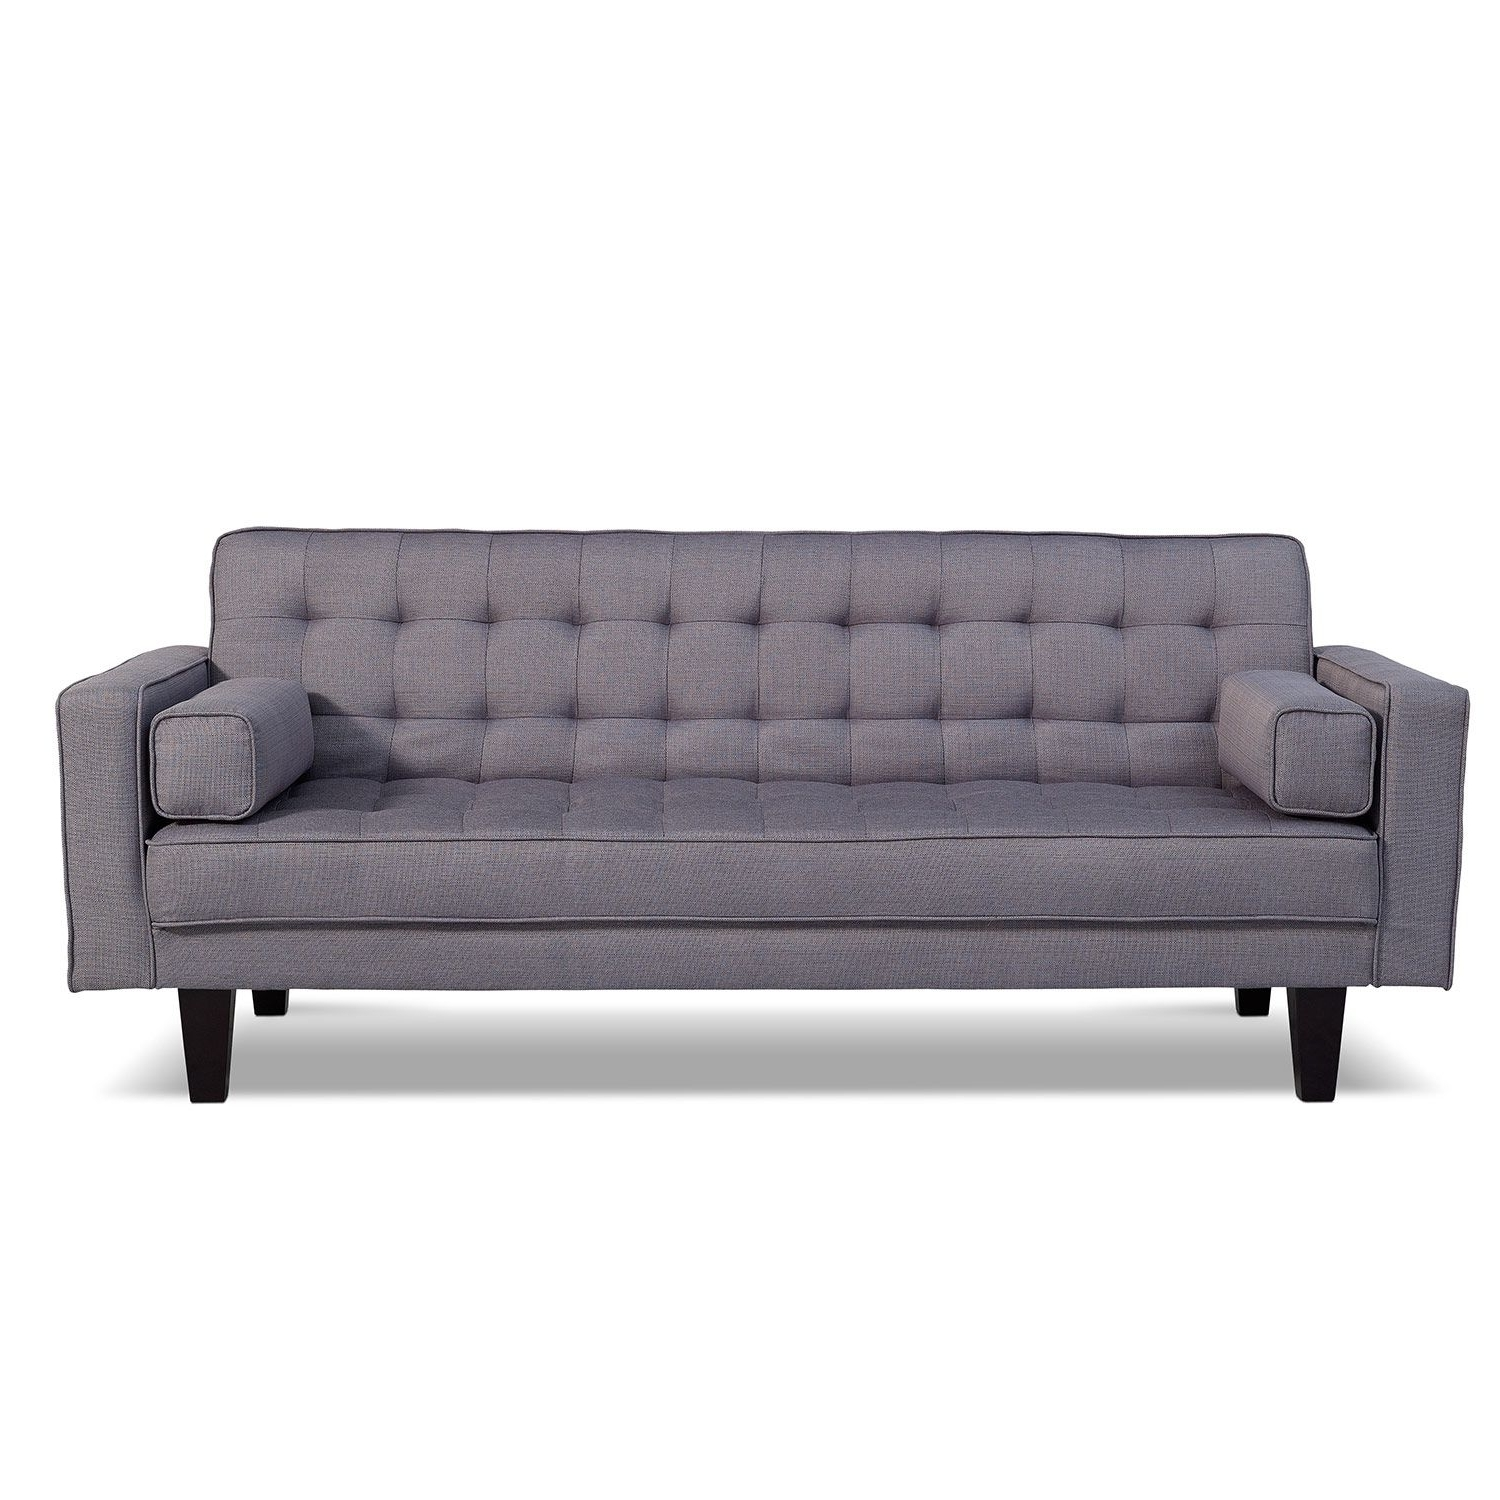 Value Intended For 2018 City Sofa Beds (View 7 of 15)